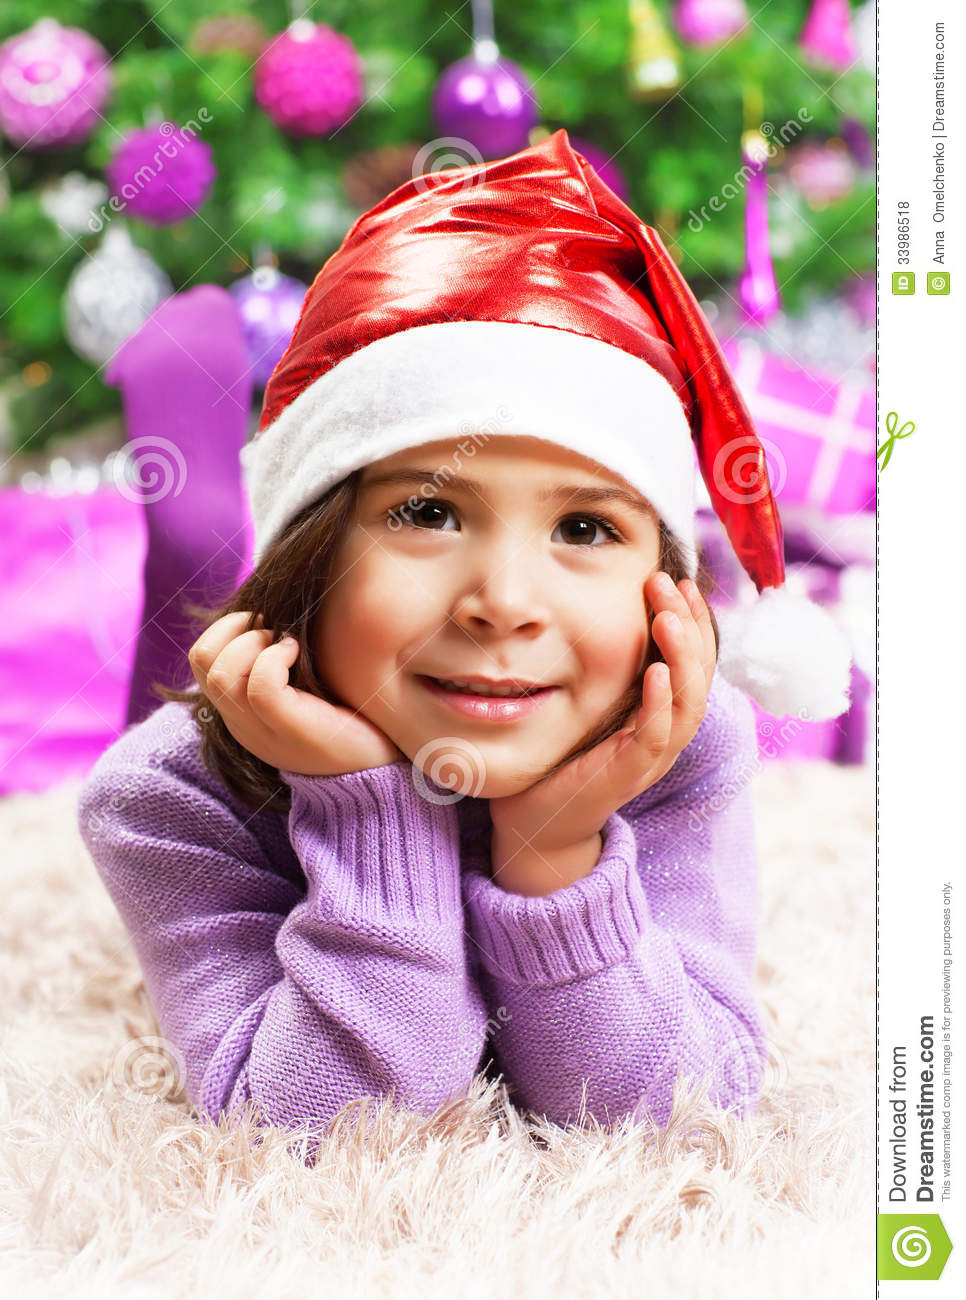 e85350934fc8 Happy Little Girl In Christmas Eve Stock Photo - Image of lovely ...